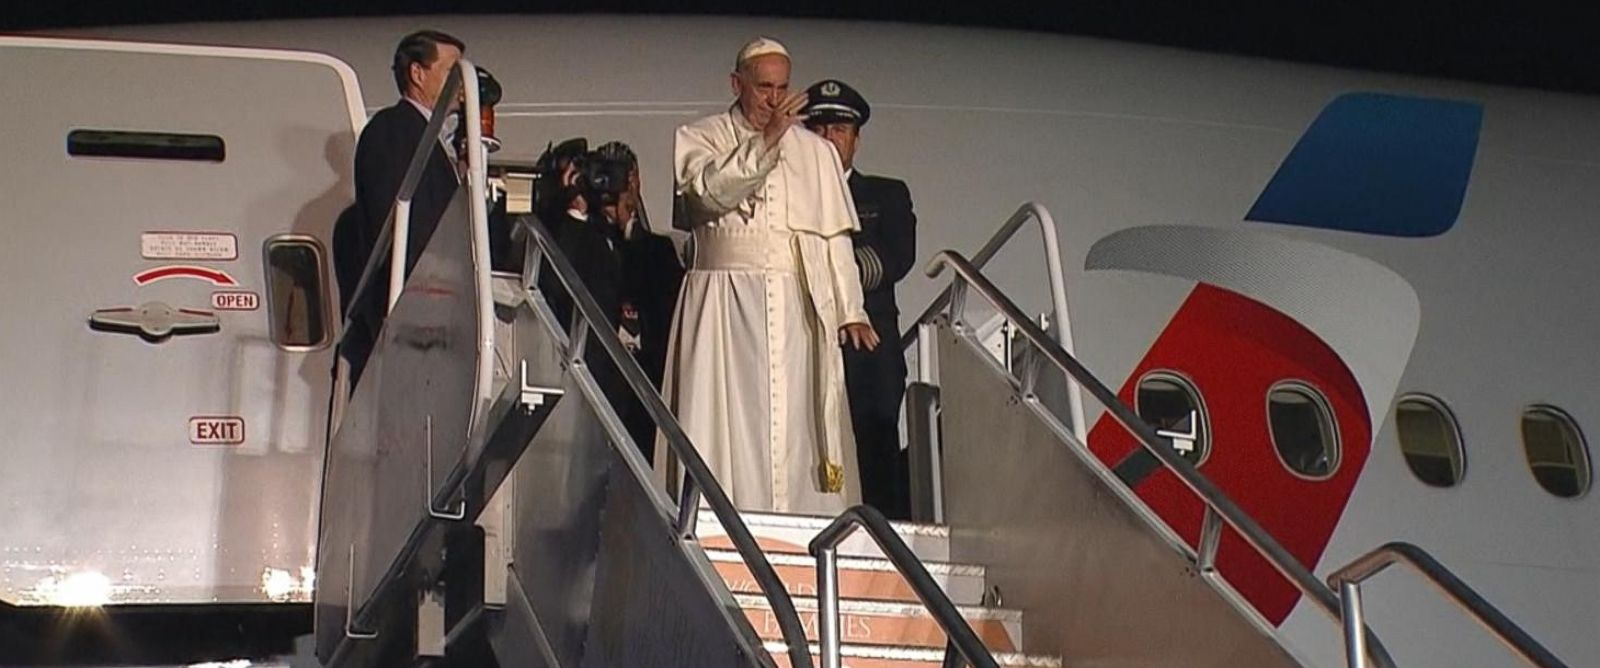 PHOTO: Pope Francis is pictured at the airport in Philadelphia, prior to his departure on Sept. 27, 2015.